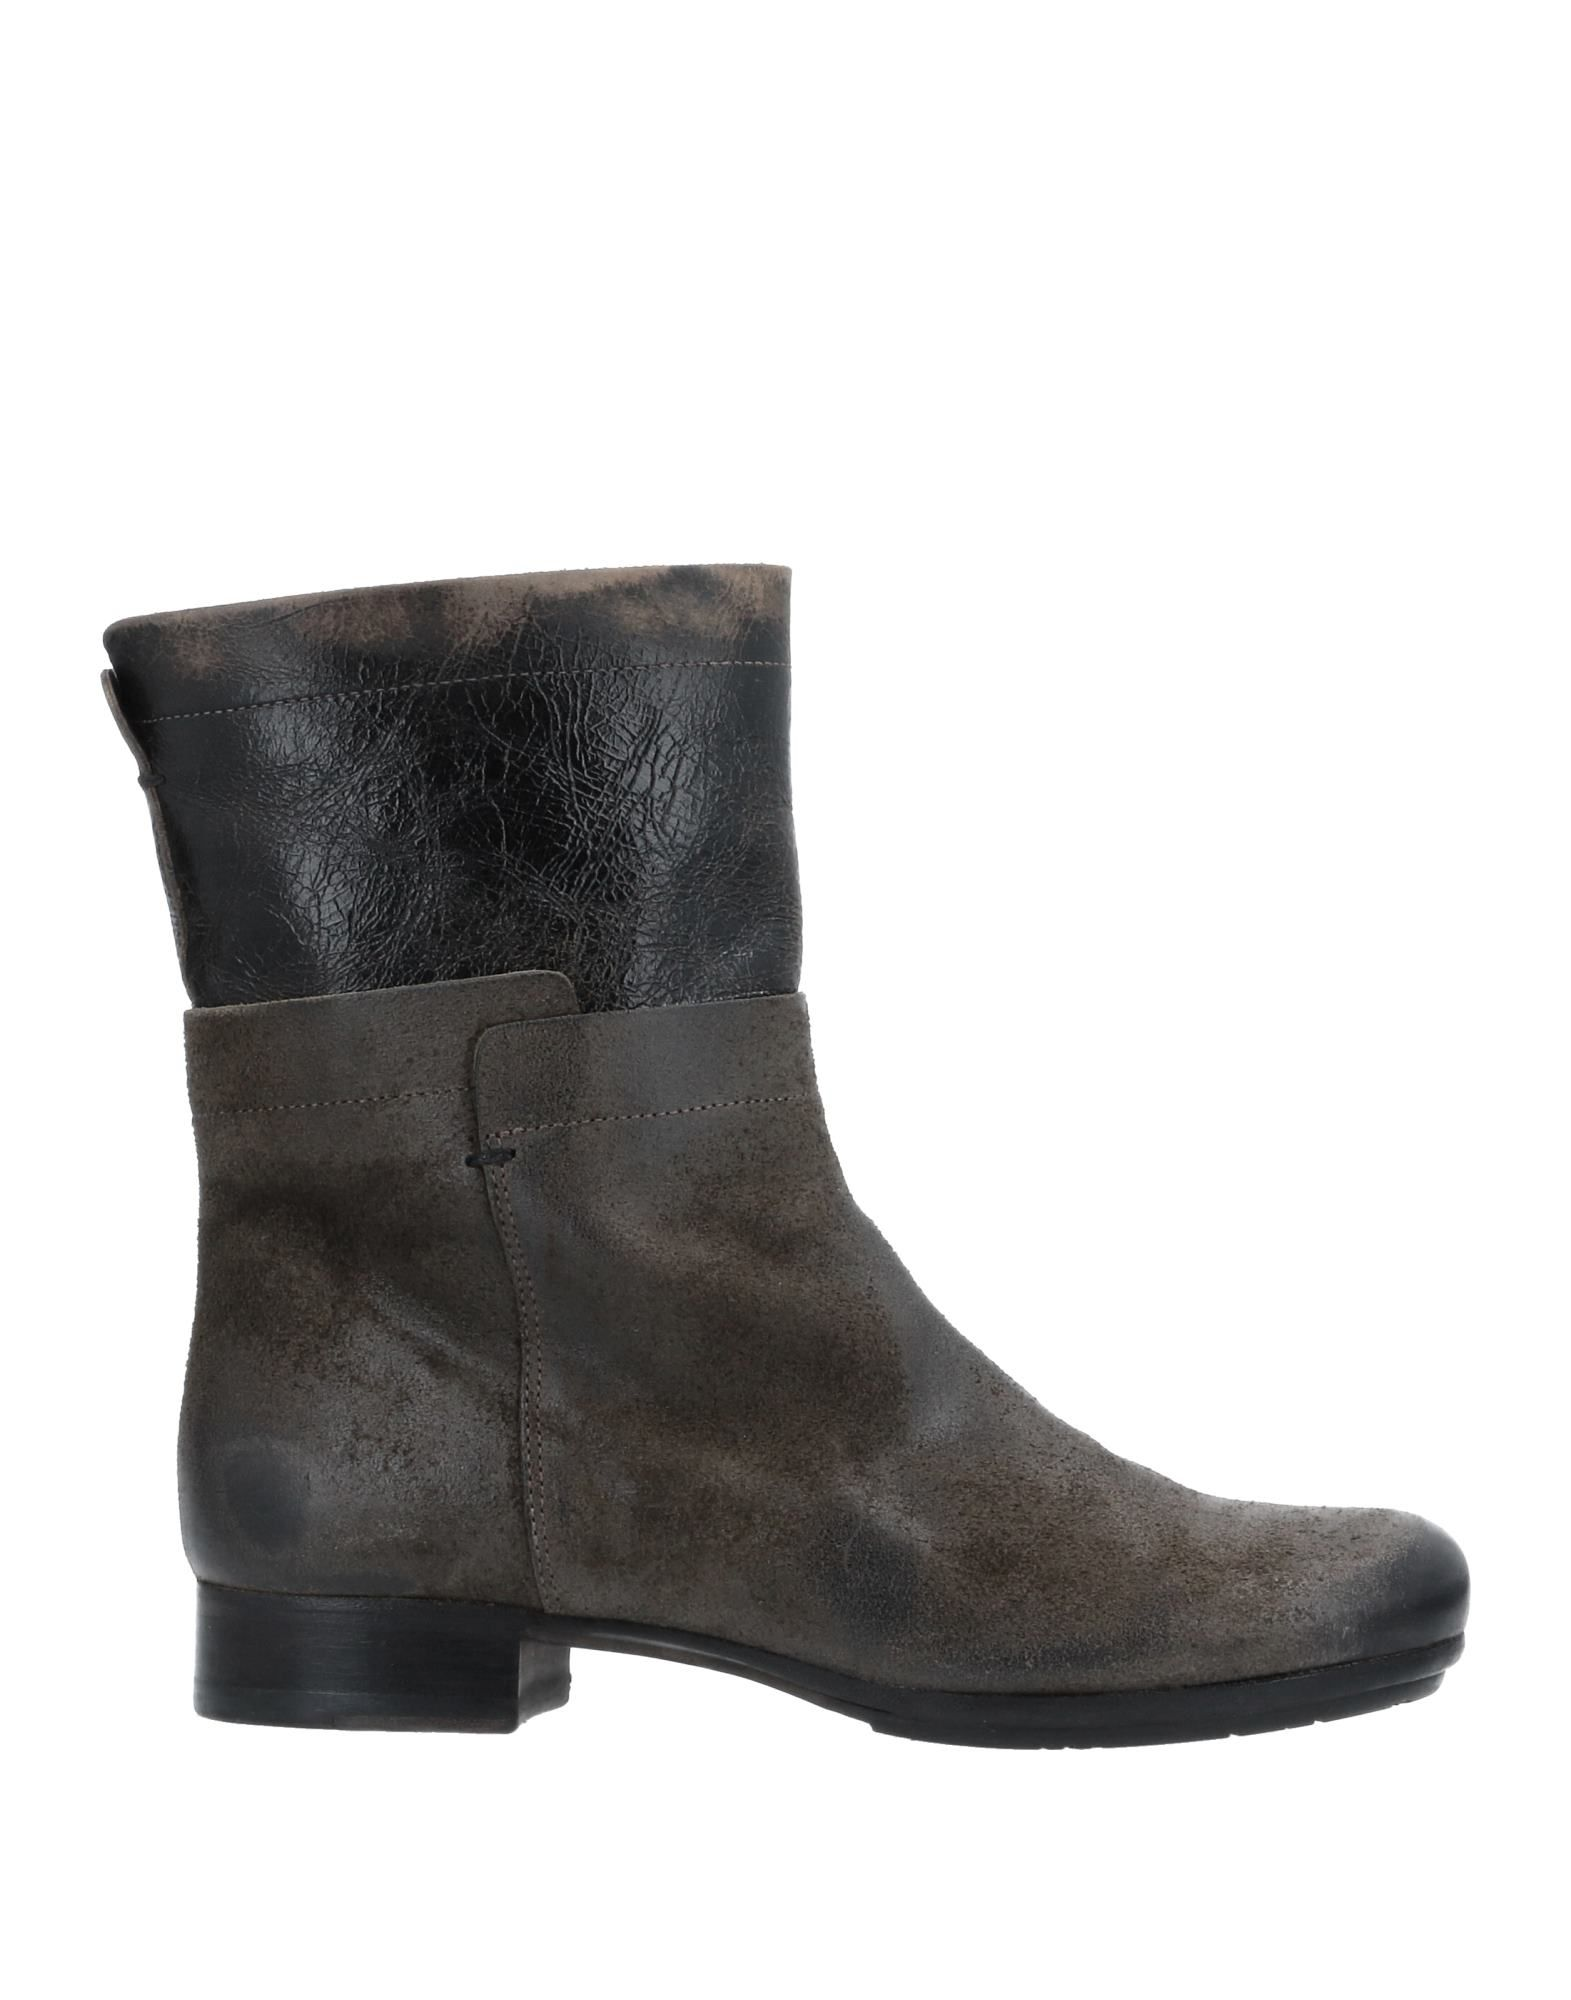 Pantanetti Ankle Boot - Women Pantanetti Ankle United Boots online on  United Ankle Kingdom - 11512636BU 84bd2b